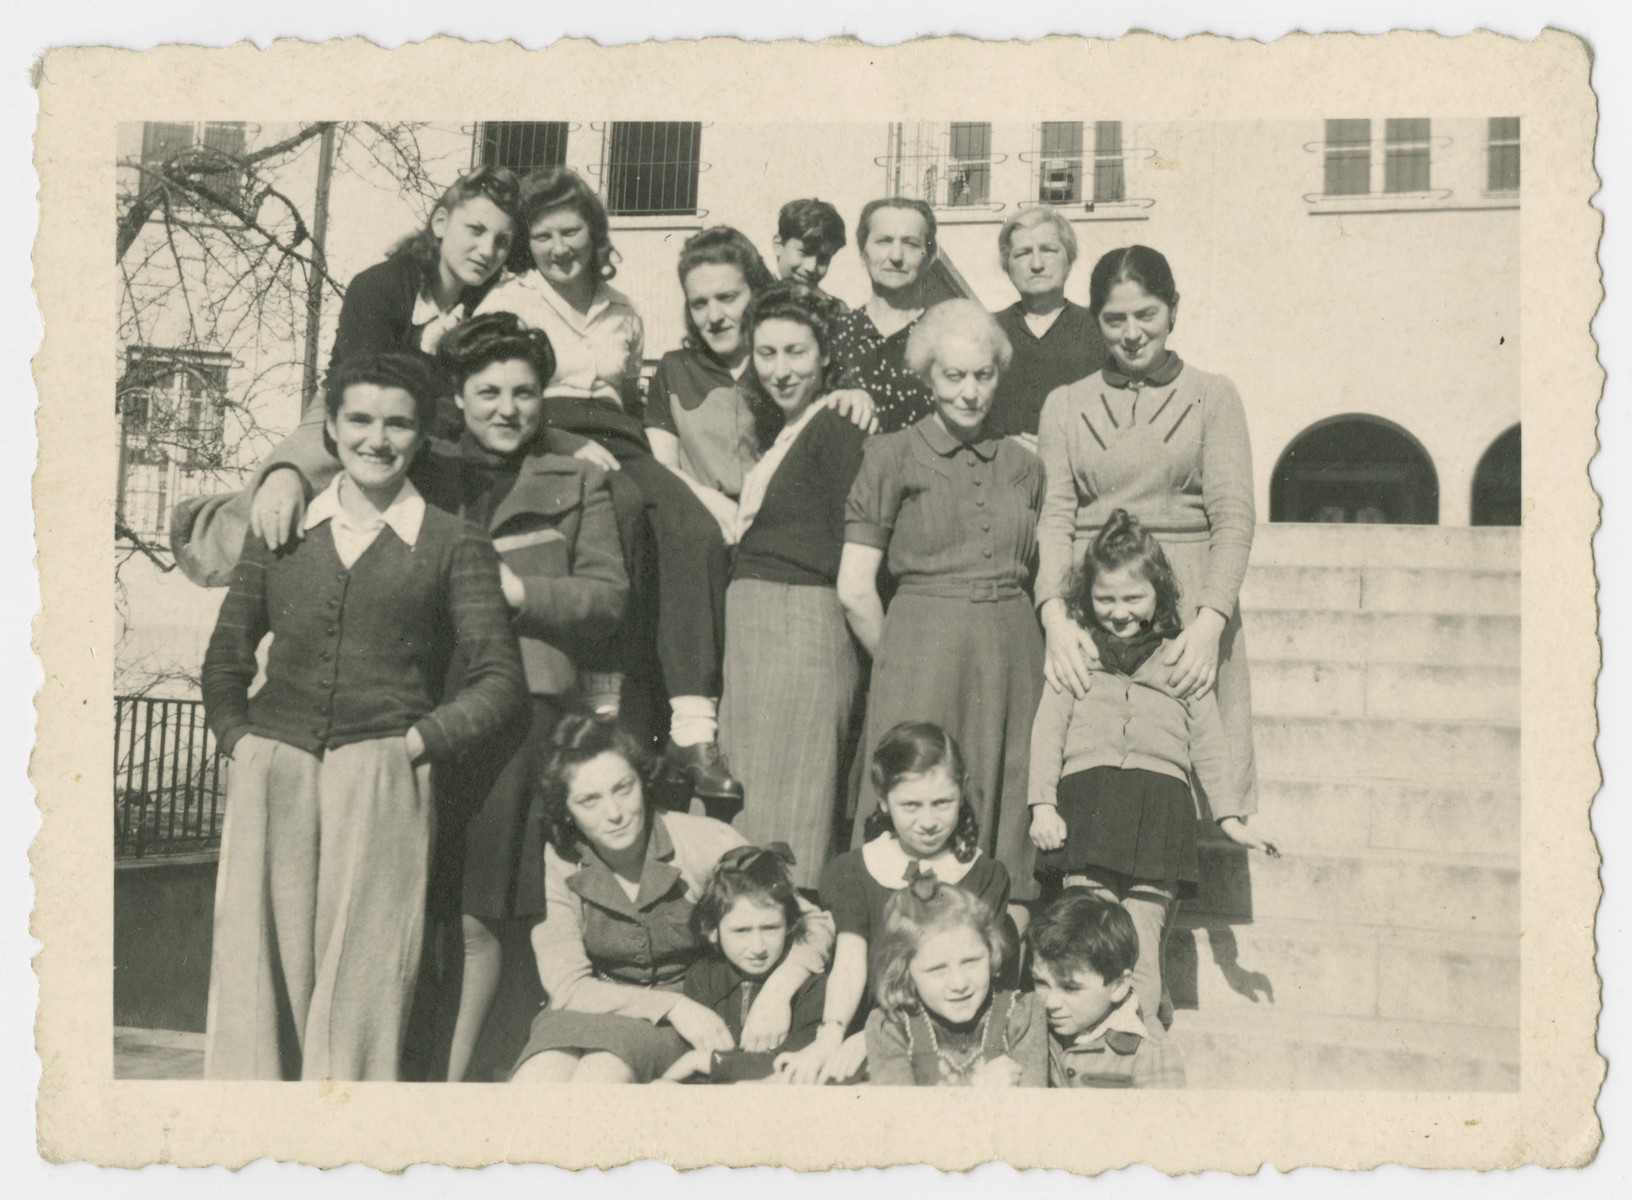 Group portrait of women and girls standing on the steps of what probably is the Liebenau internment camp for foreign nationals.  Liebenau, located on Lake Constance close to Meckenbeuren, was opened in 1940 and operated until 1945.  It was used as an assembly point for prisoners who were being considered for exchange.  Pictured on the far right are Rywa Roth with her daughter Anna.